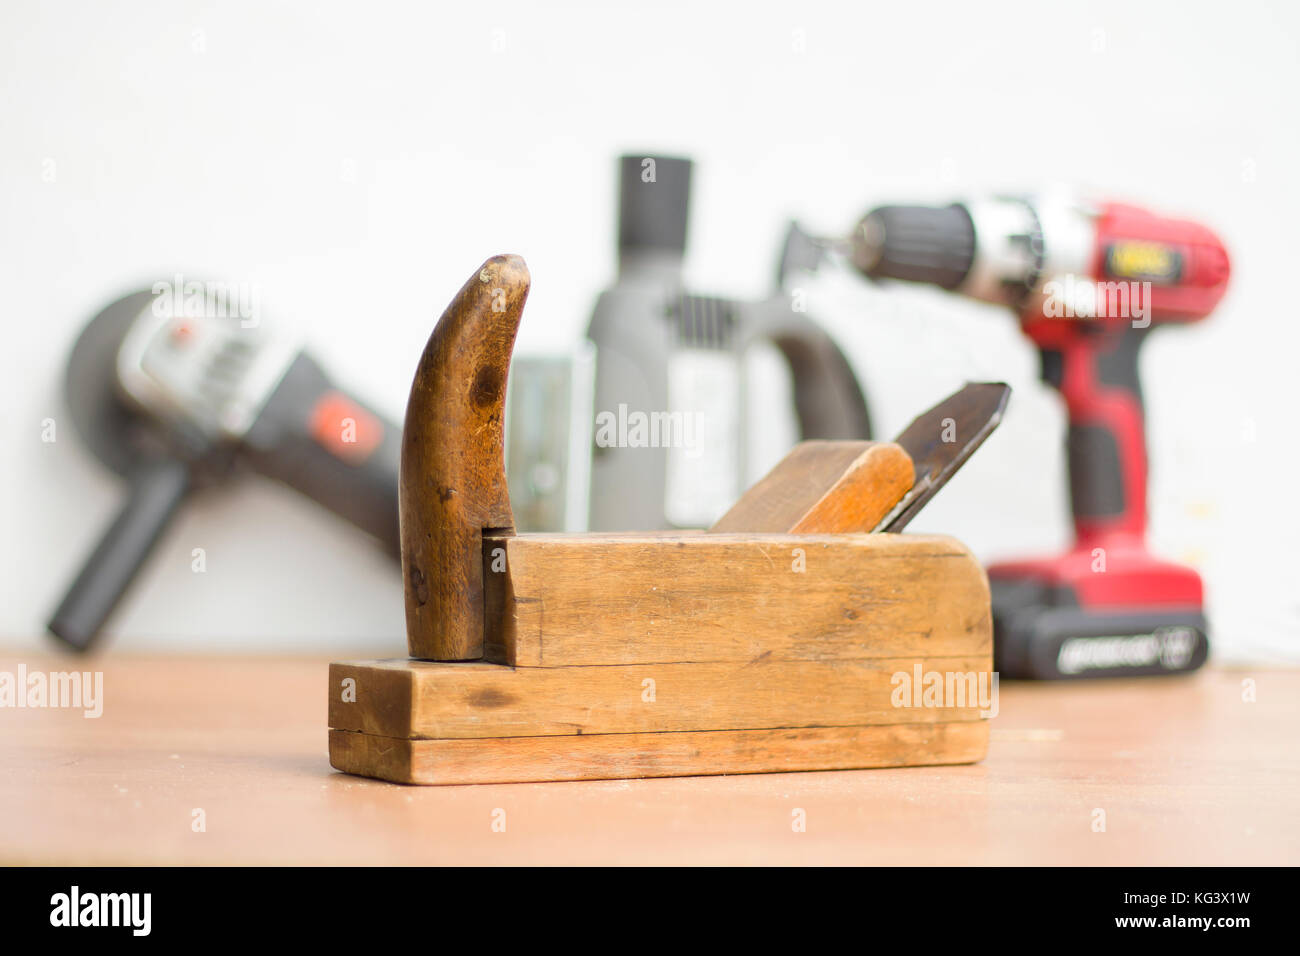 Old carpentry tools in the foreground. New power tools in the background. Old carpenter joinery in the foreground. - Stock Image